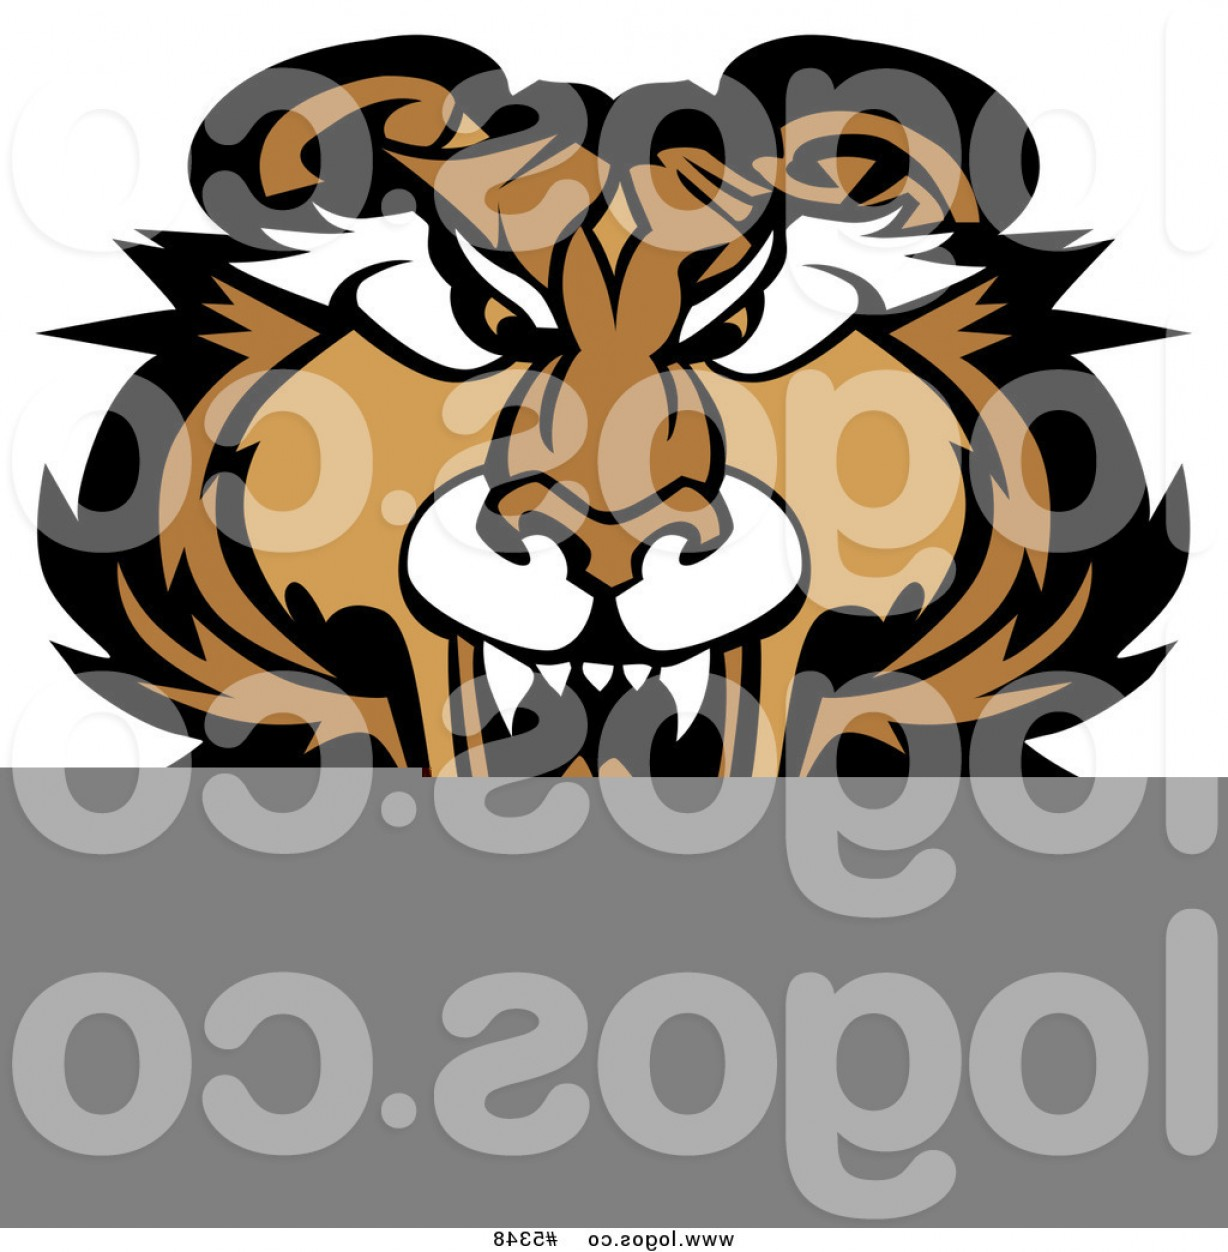 Cougar Logo Vector: Royalty Free Vector Of A Logo Of A Roaring Puma Cougar By Chromaco